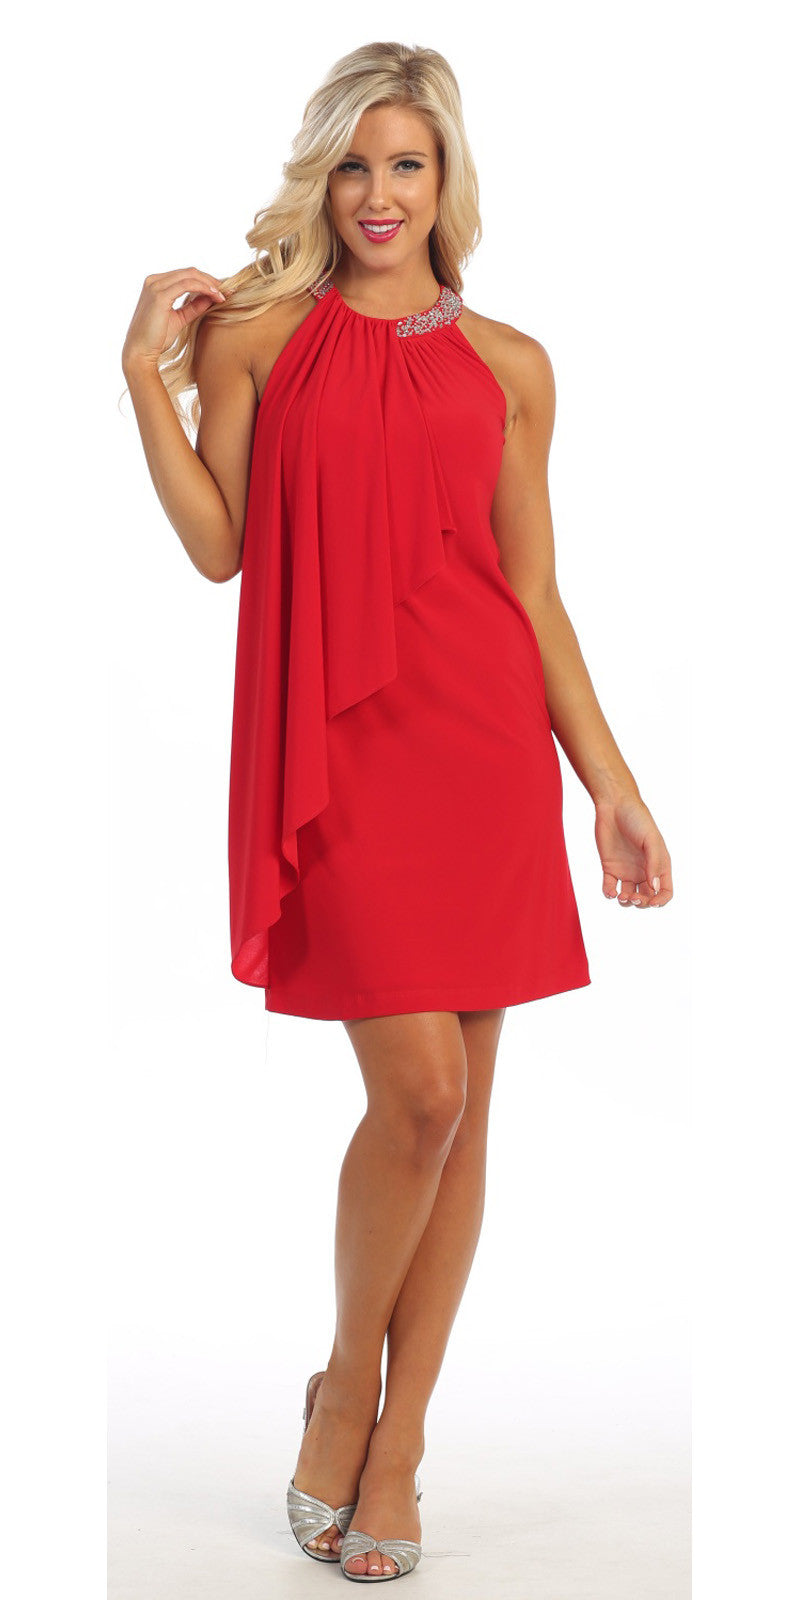 Halter Cocktail Dress Red Short Rhinestone Neckline Draped